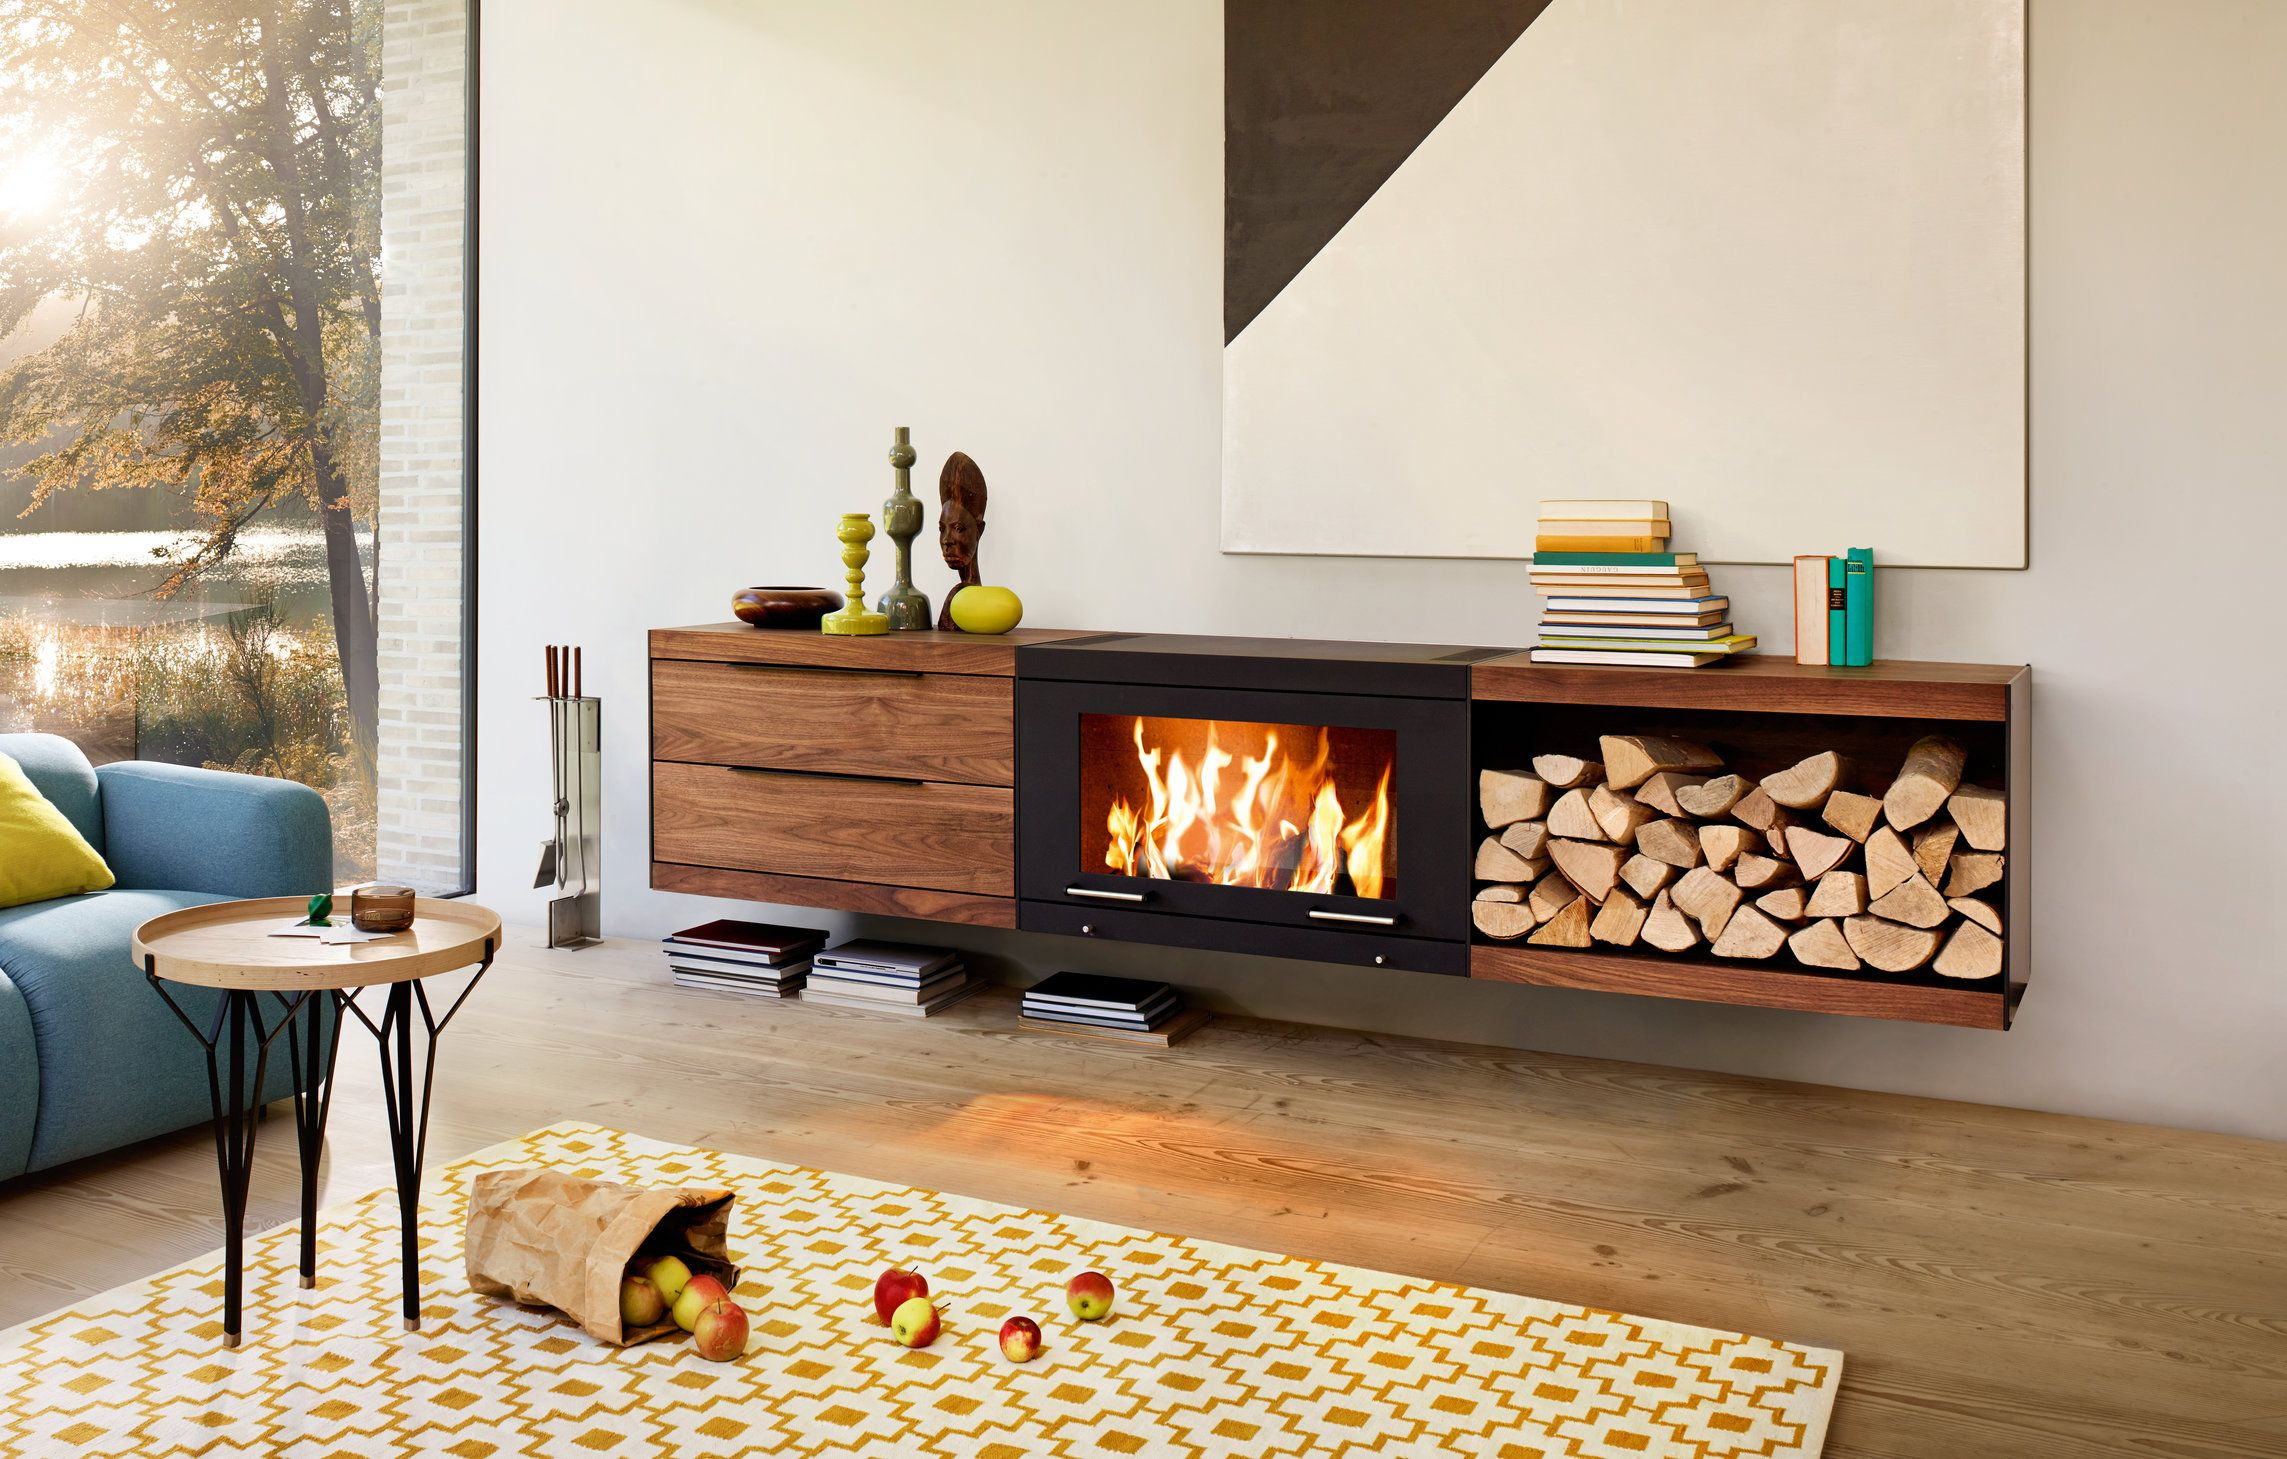 Skantherm Oelde balance 7kw log burning stove designed by maly for skantherm